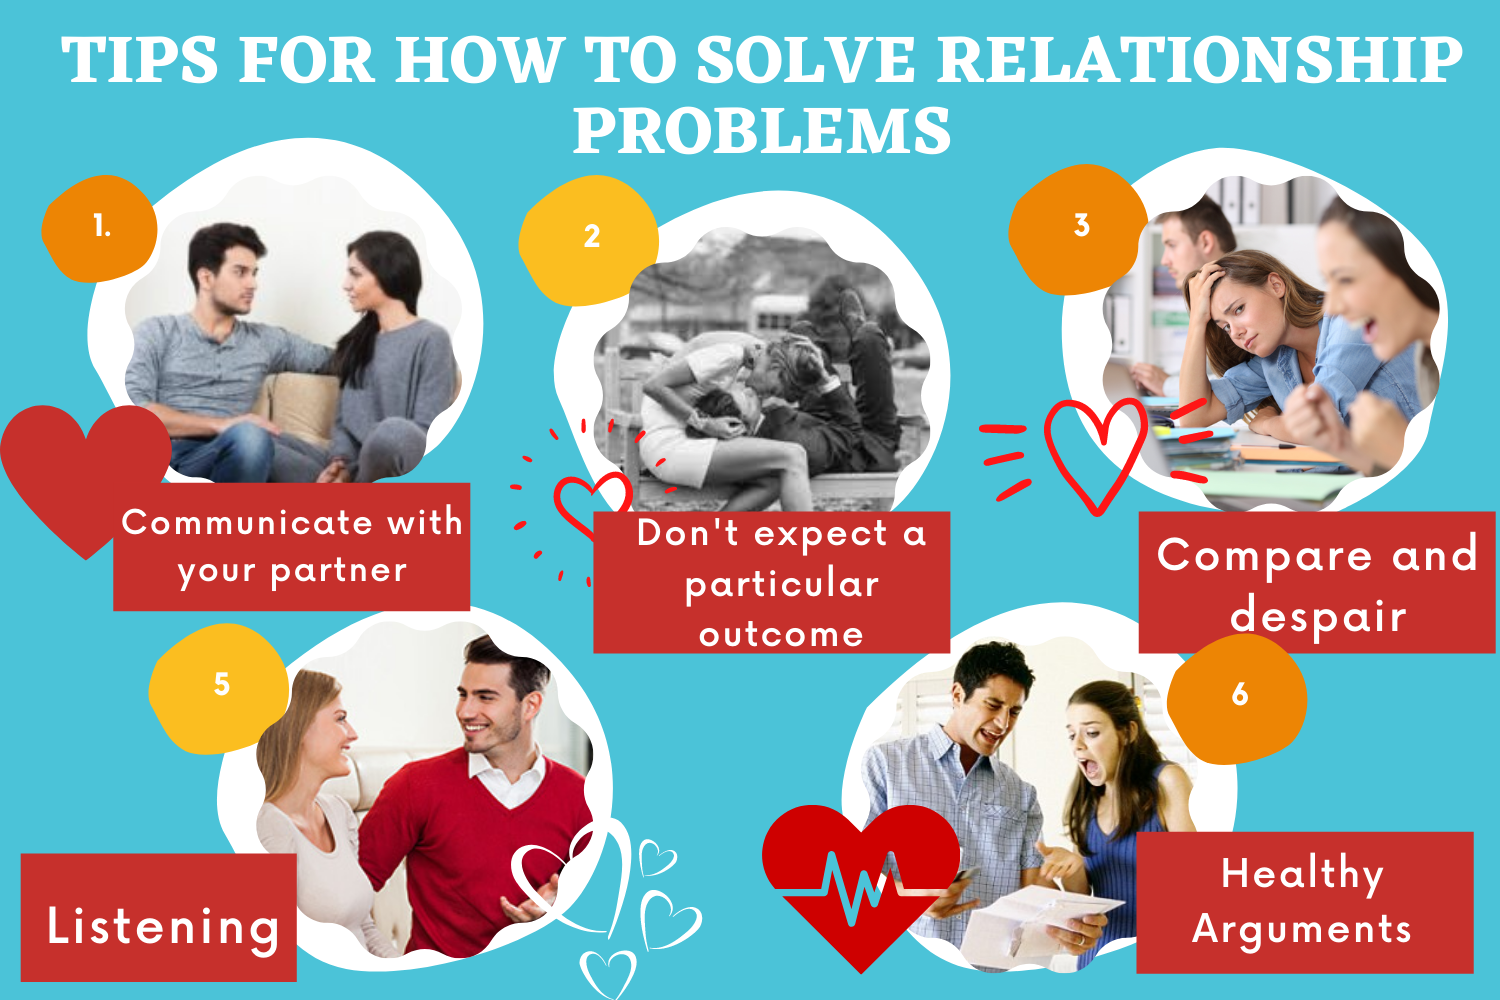 Tips For How To Solve Relationship Problems